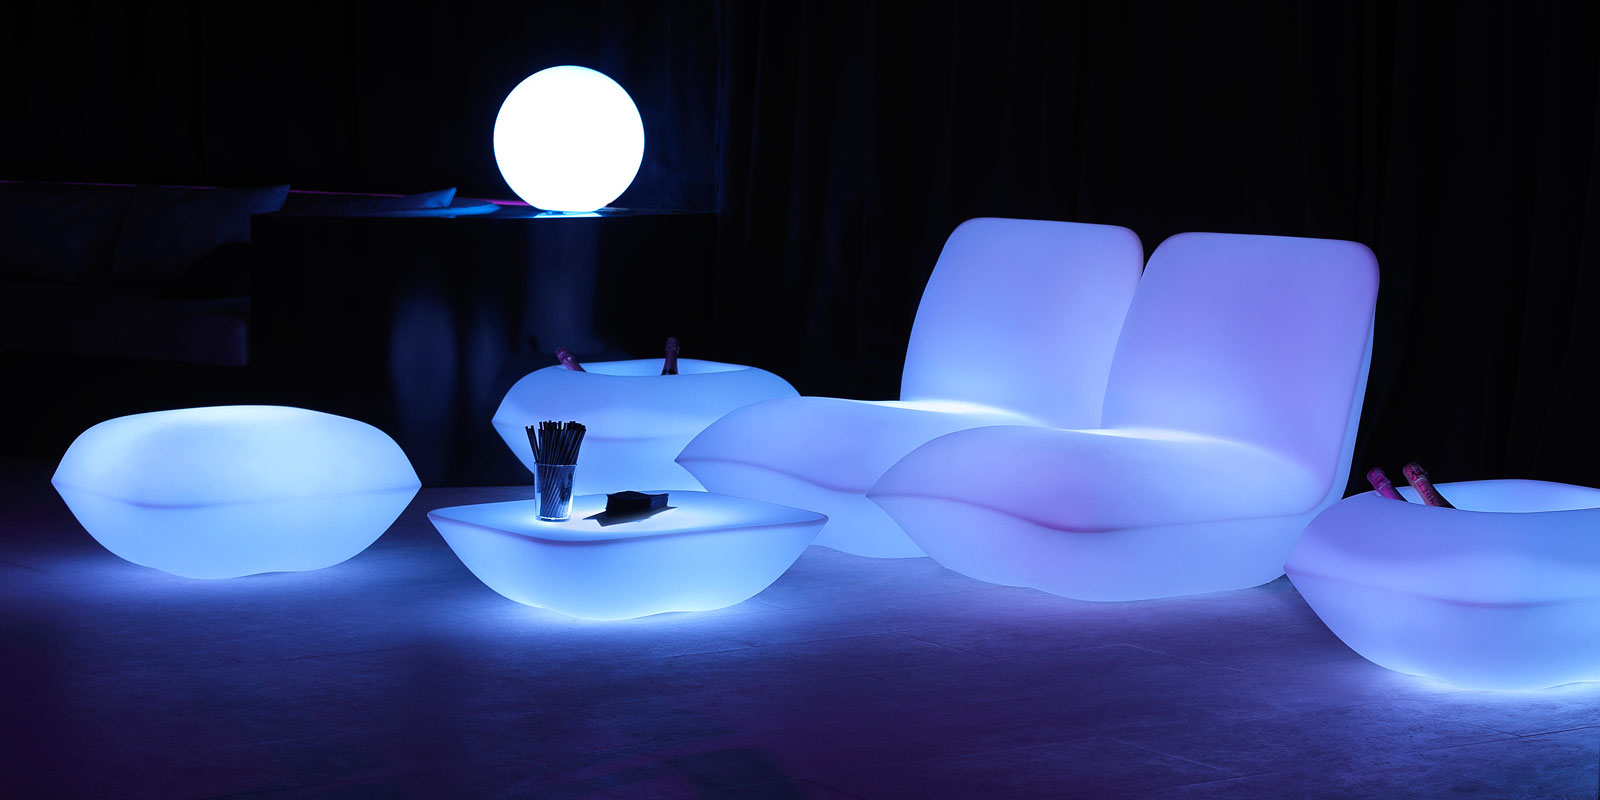 luxury-outdoor-design-furniture-light-up-furniture-loungechair-armchair-puff-table-pot-pillow-stefan